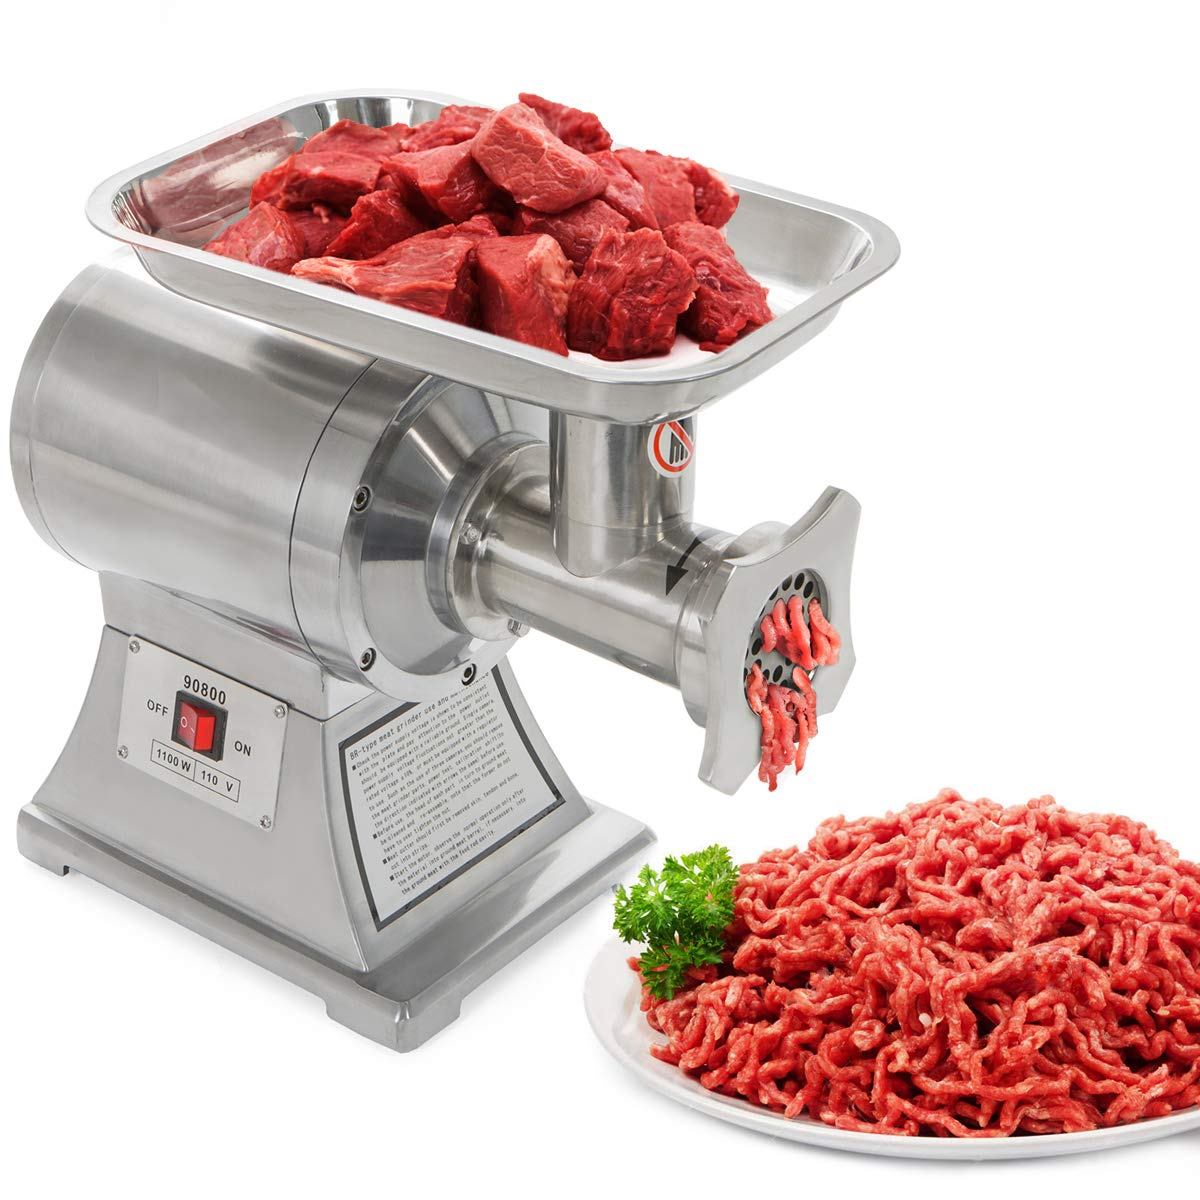 Ensue Commercial 1100W Electric Meat Grinder Mincer Stainless Steel Industrial 1HP (FDA Certificated) #12 Grinder Size by Barton